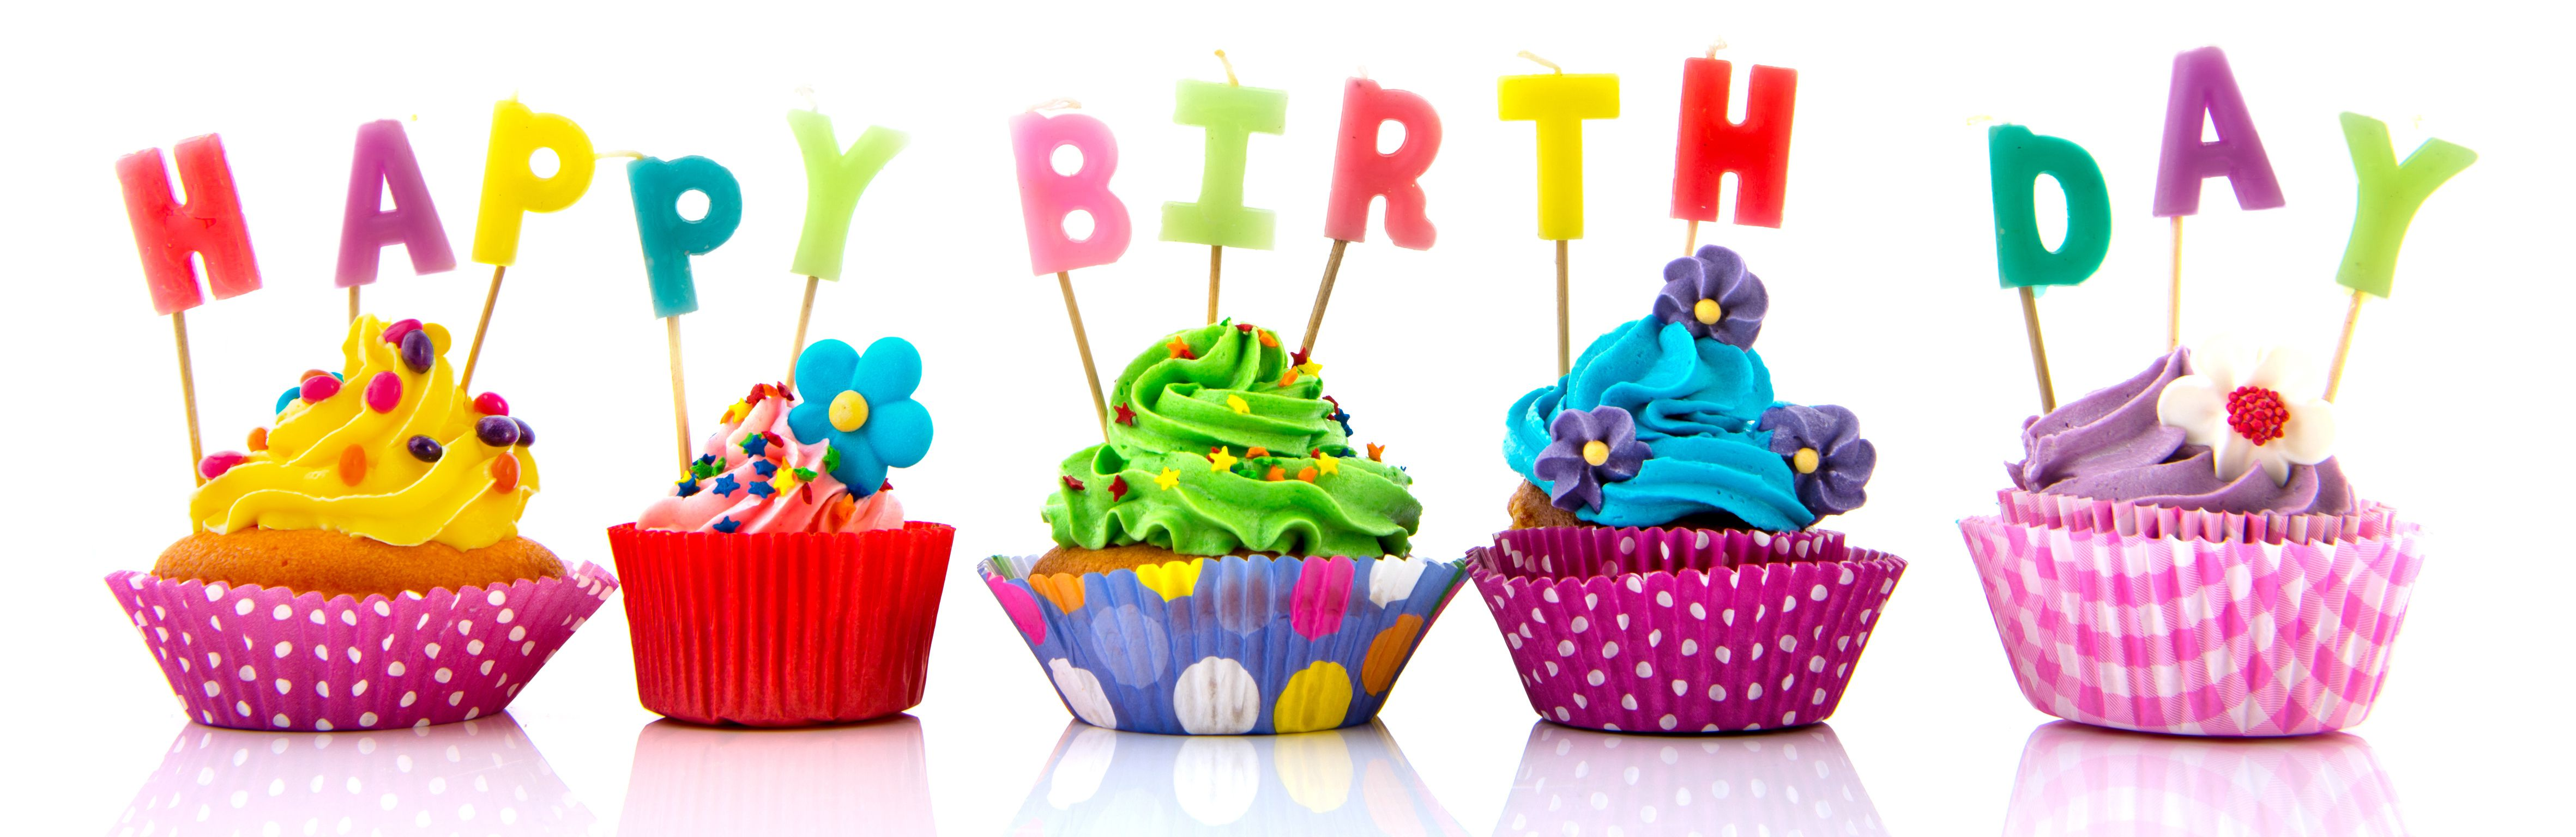 Happy Birthday Colorful Cupcake Graphic Share On Facebook